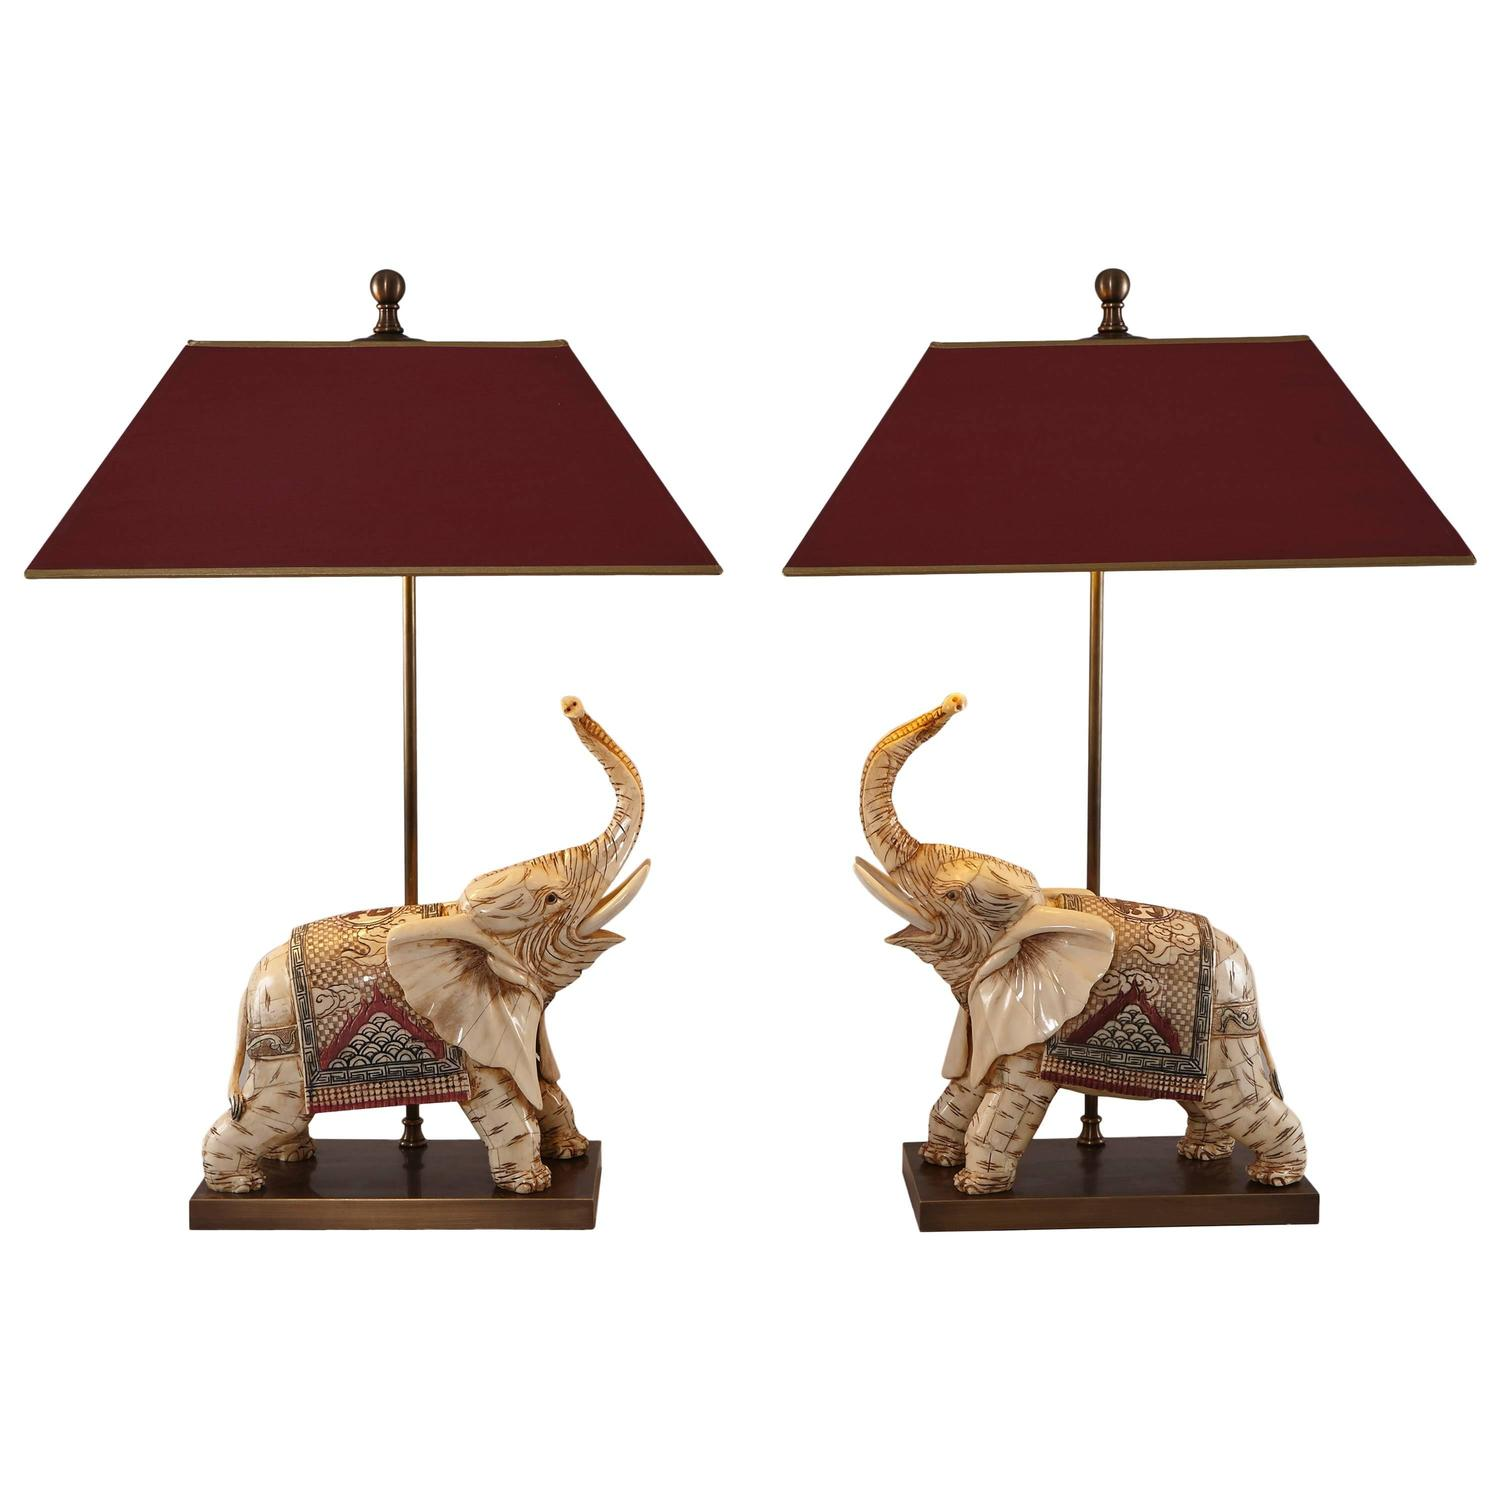 Pair Of Bone Elephants As Table Lamps For Sale At 1stdibs